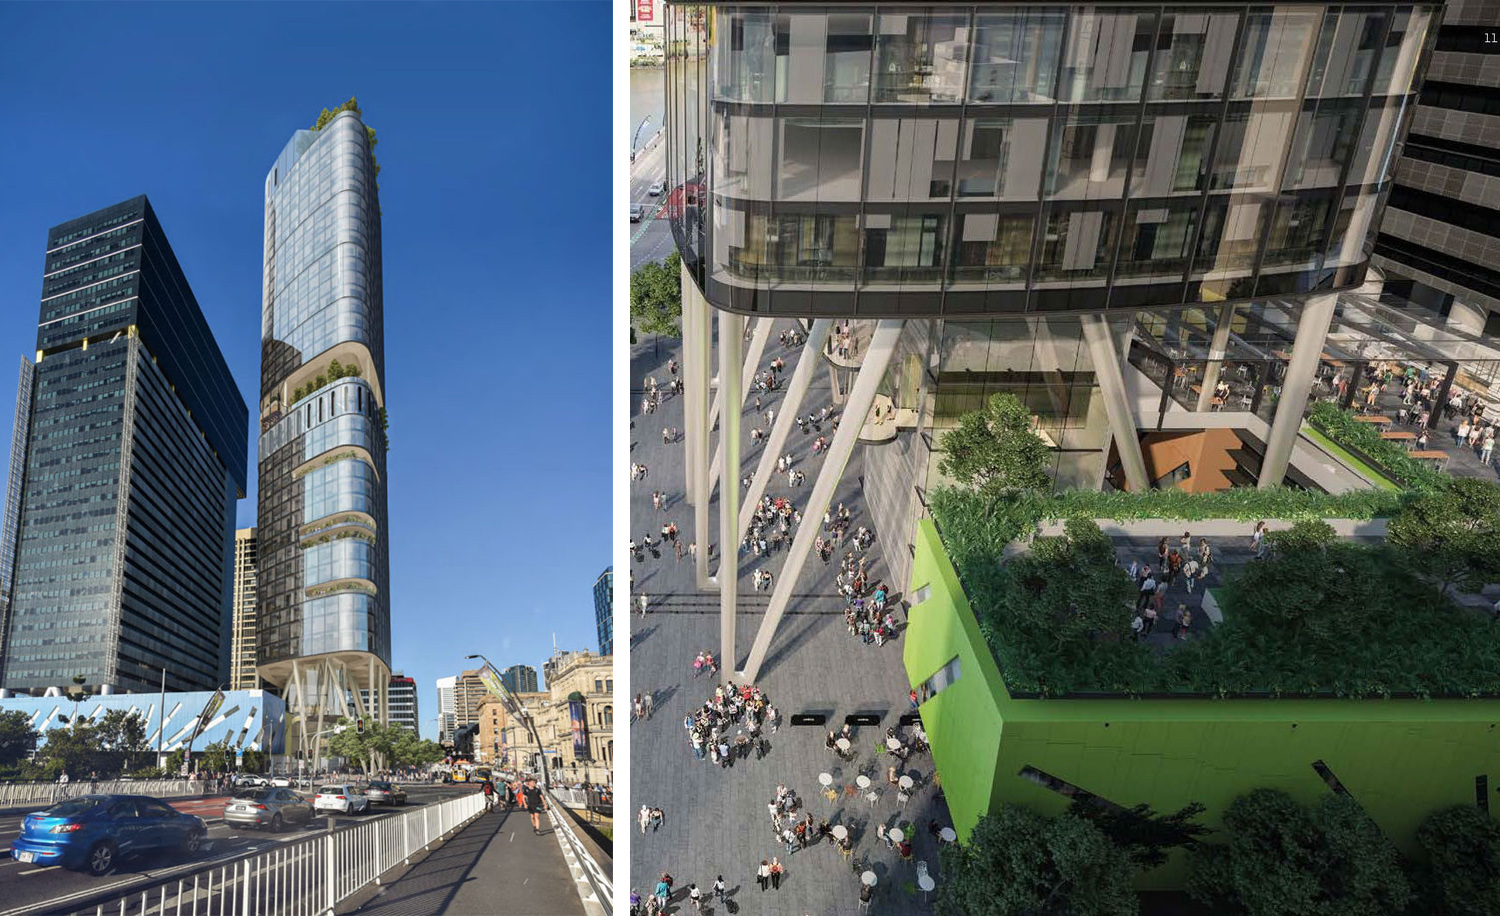 Artist's impression of Brisbane Square Tower 2 which has since been halted by the Brisbane City Council due to planning restrictions.